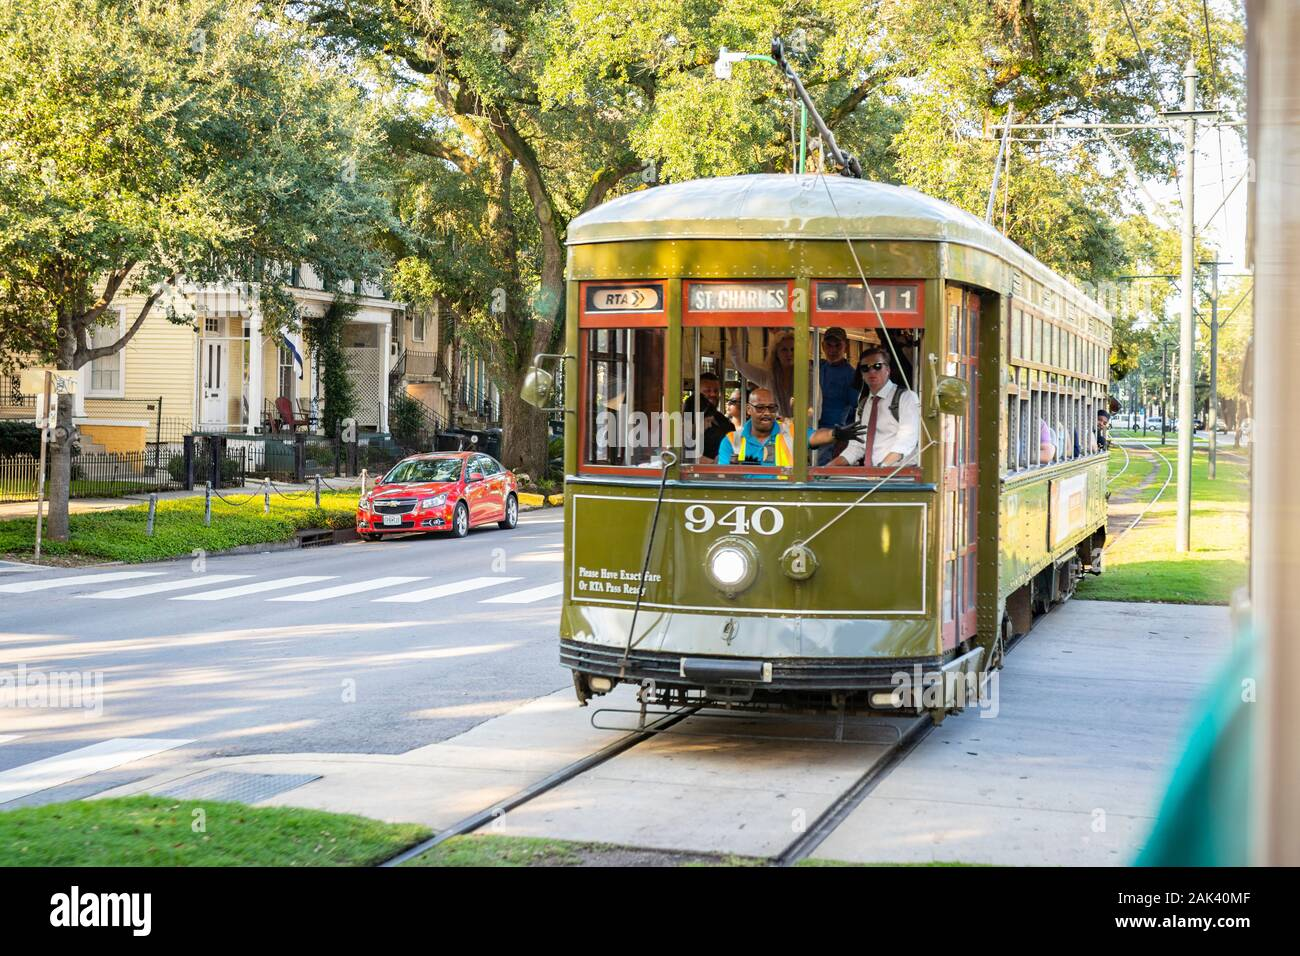 St Charles Streetcar New Orleans High Resolution Stock Photography And Images Alamy